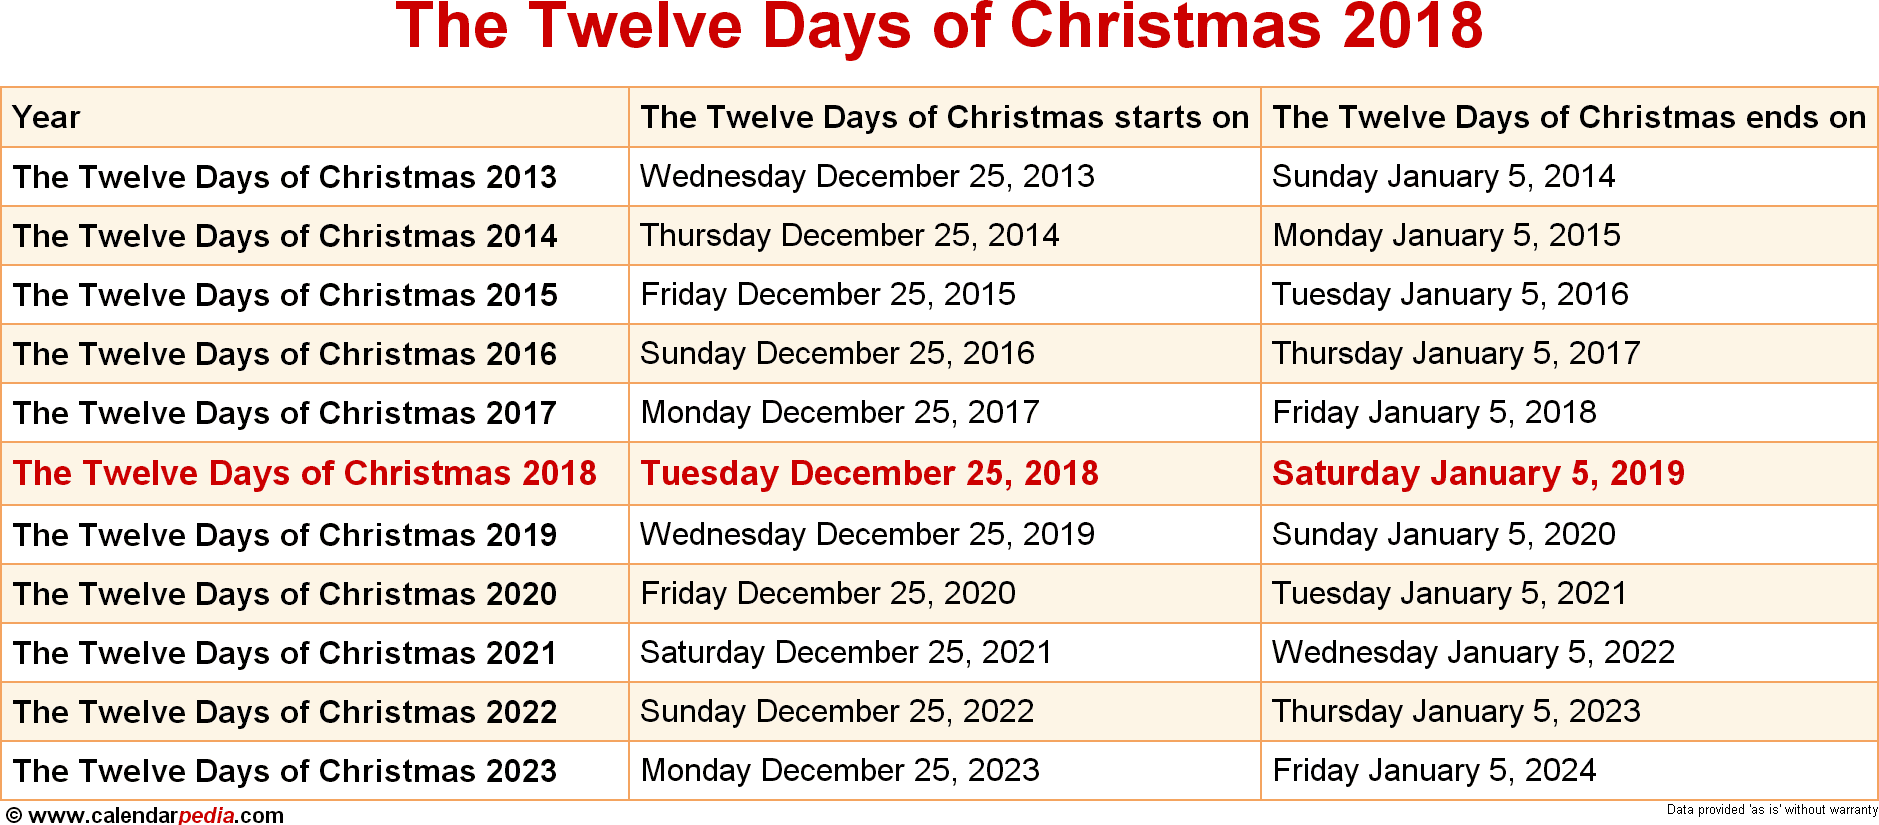 dates for the twelve days of christmas from 2013 to 2023 - When Are The Twelve Days Of Christmas